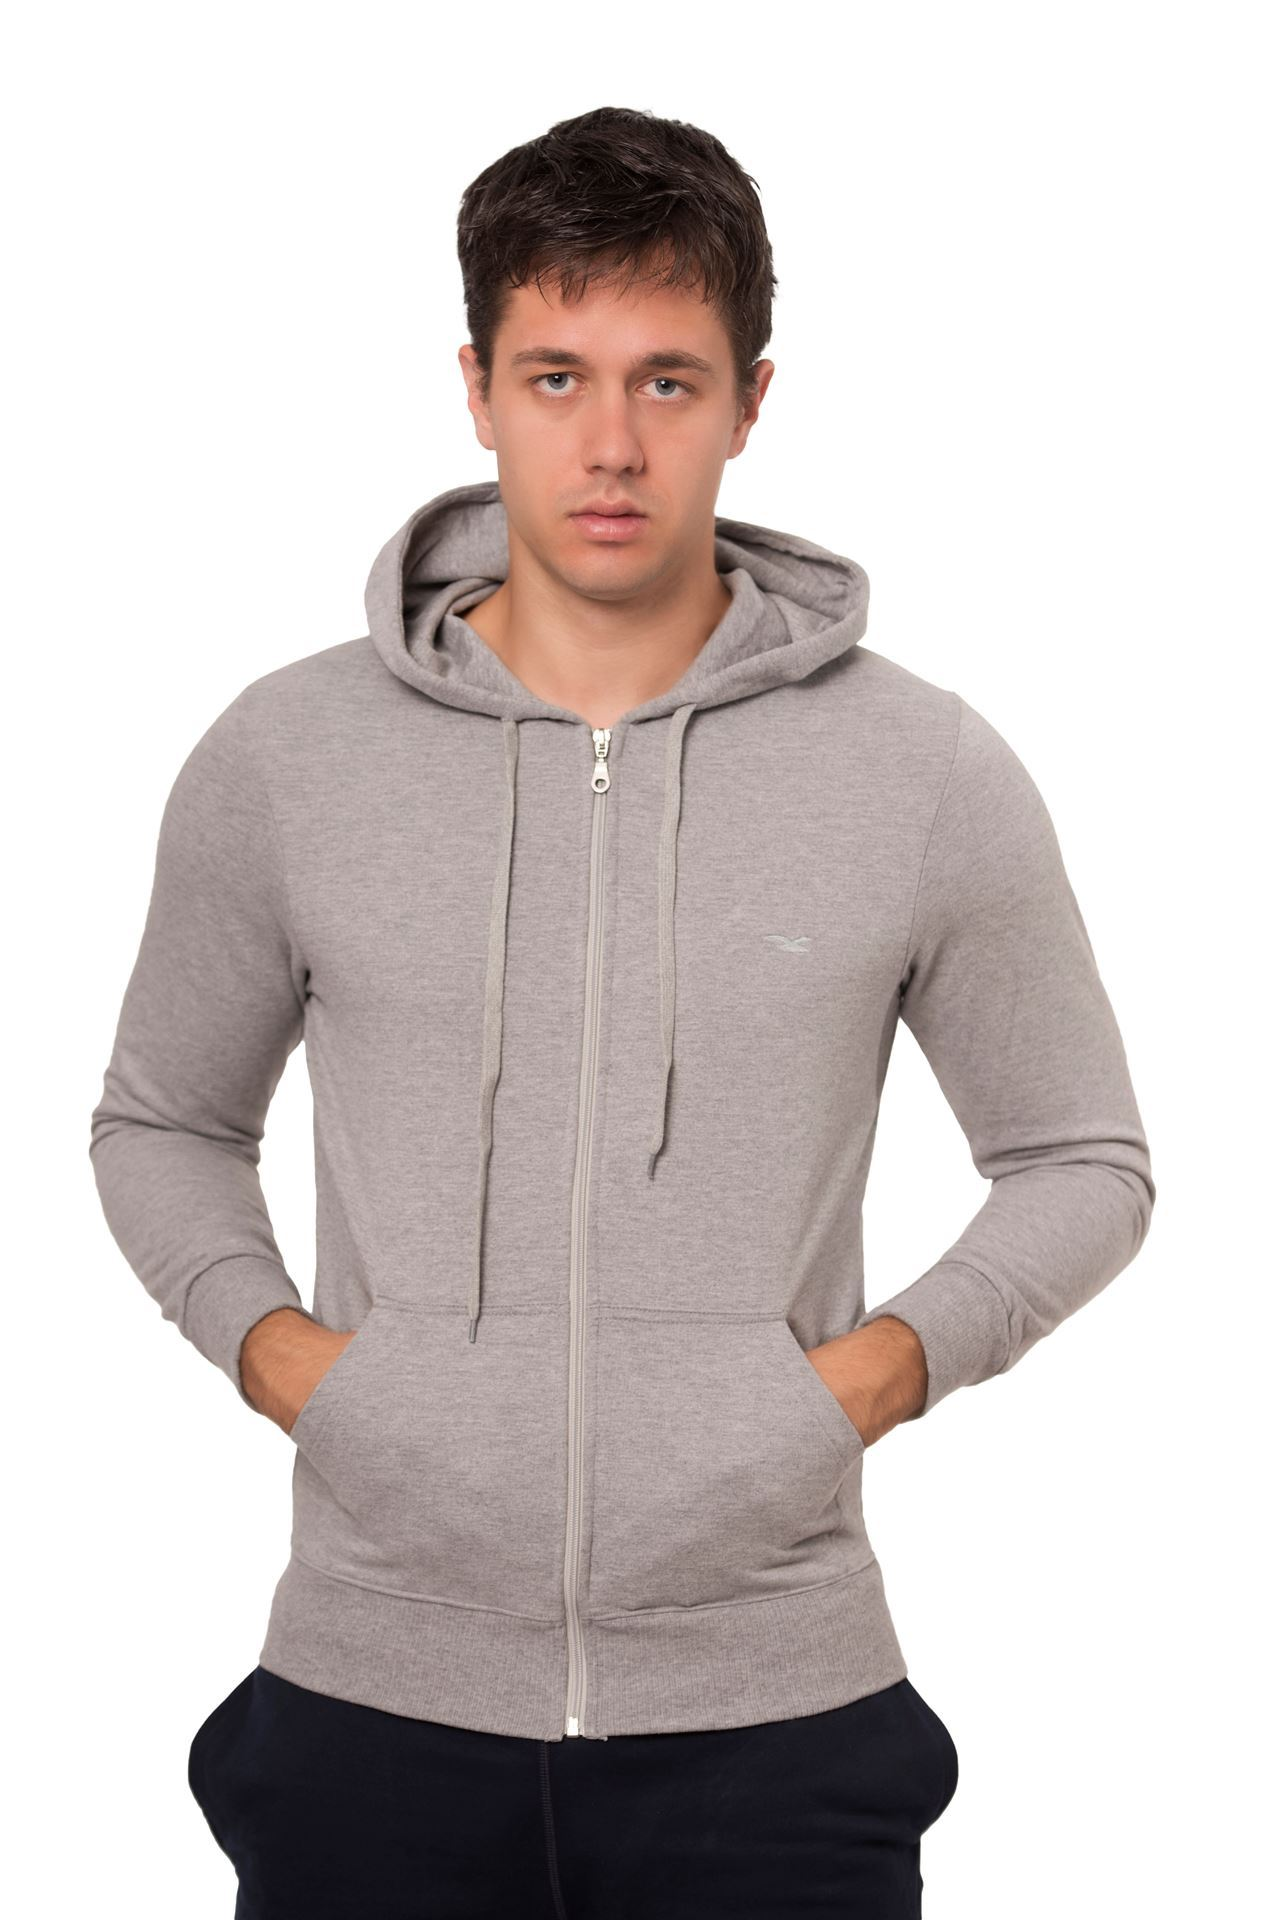 Picture of Men's long sleeves shirt